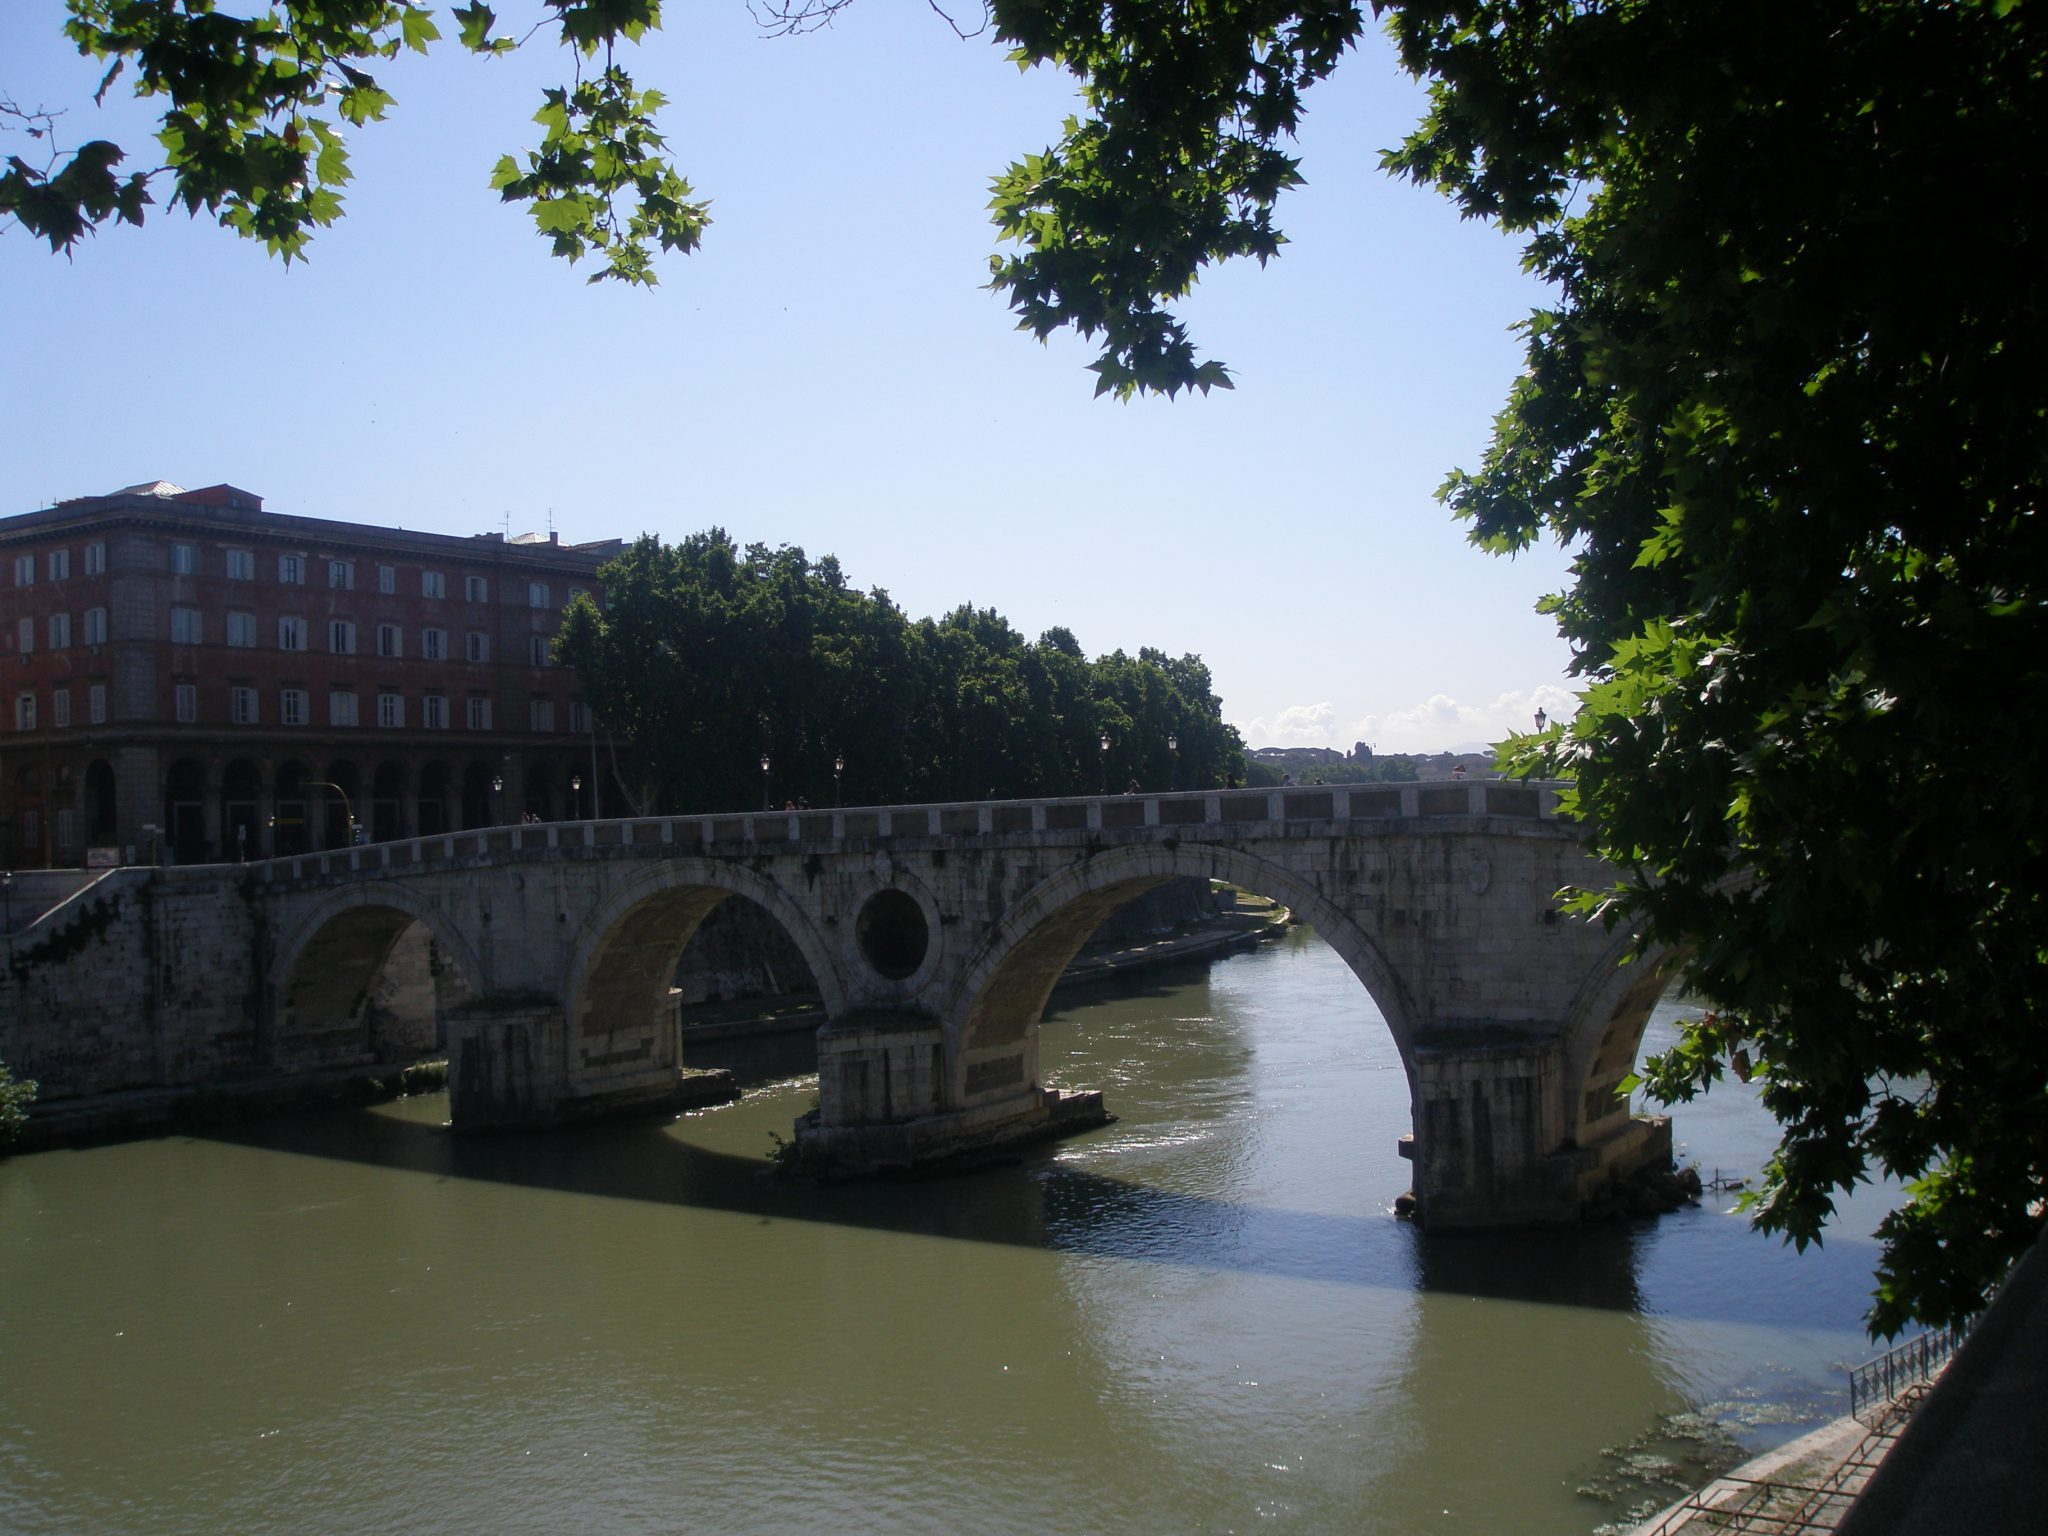 Ponte Sisto, photographed during my June 2011 visit to Rome.